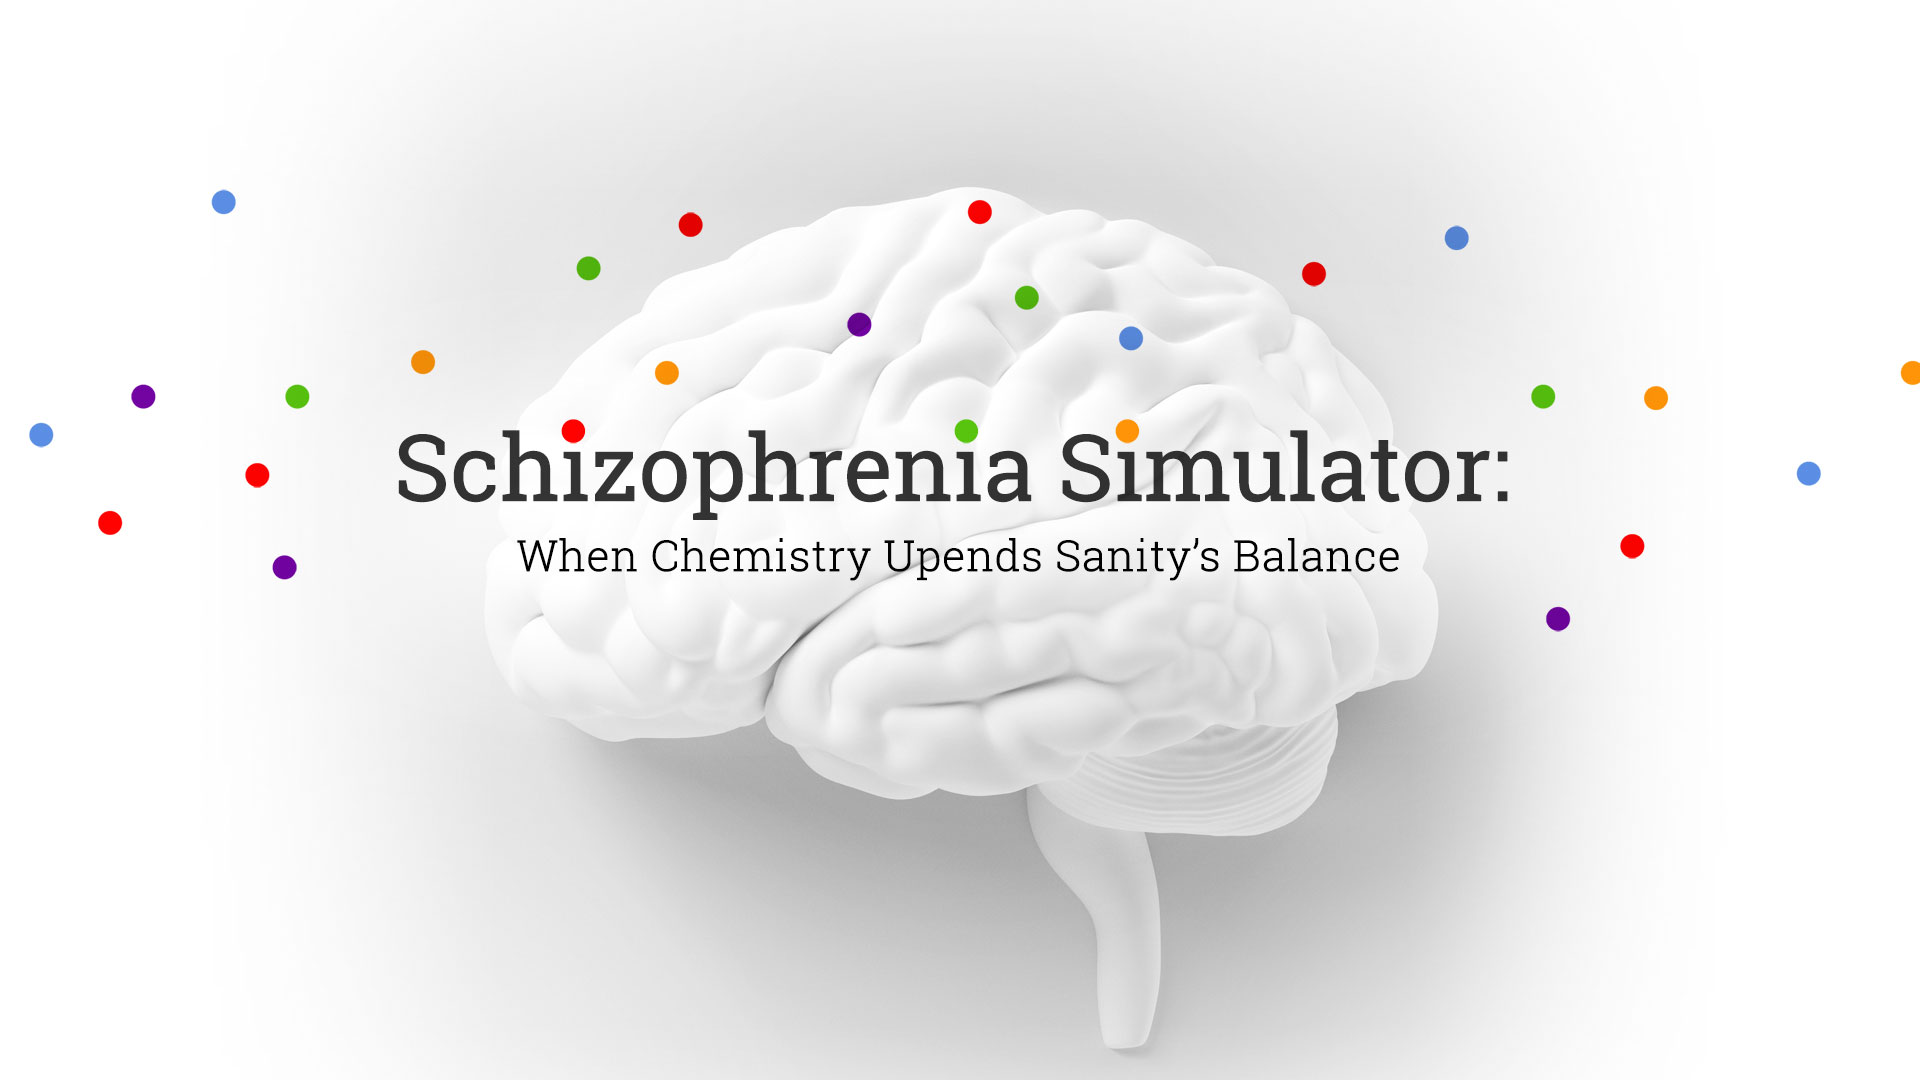 Schizophrenia Simulator: When Chemistry Upends Sanity's Balance